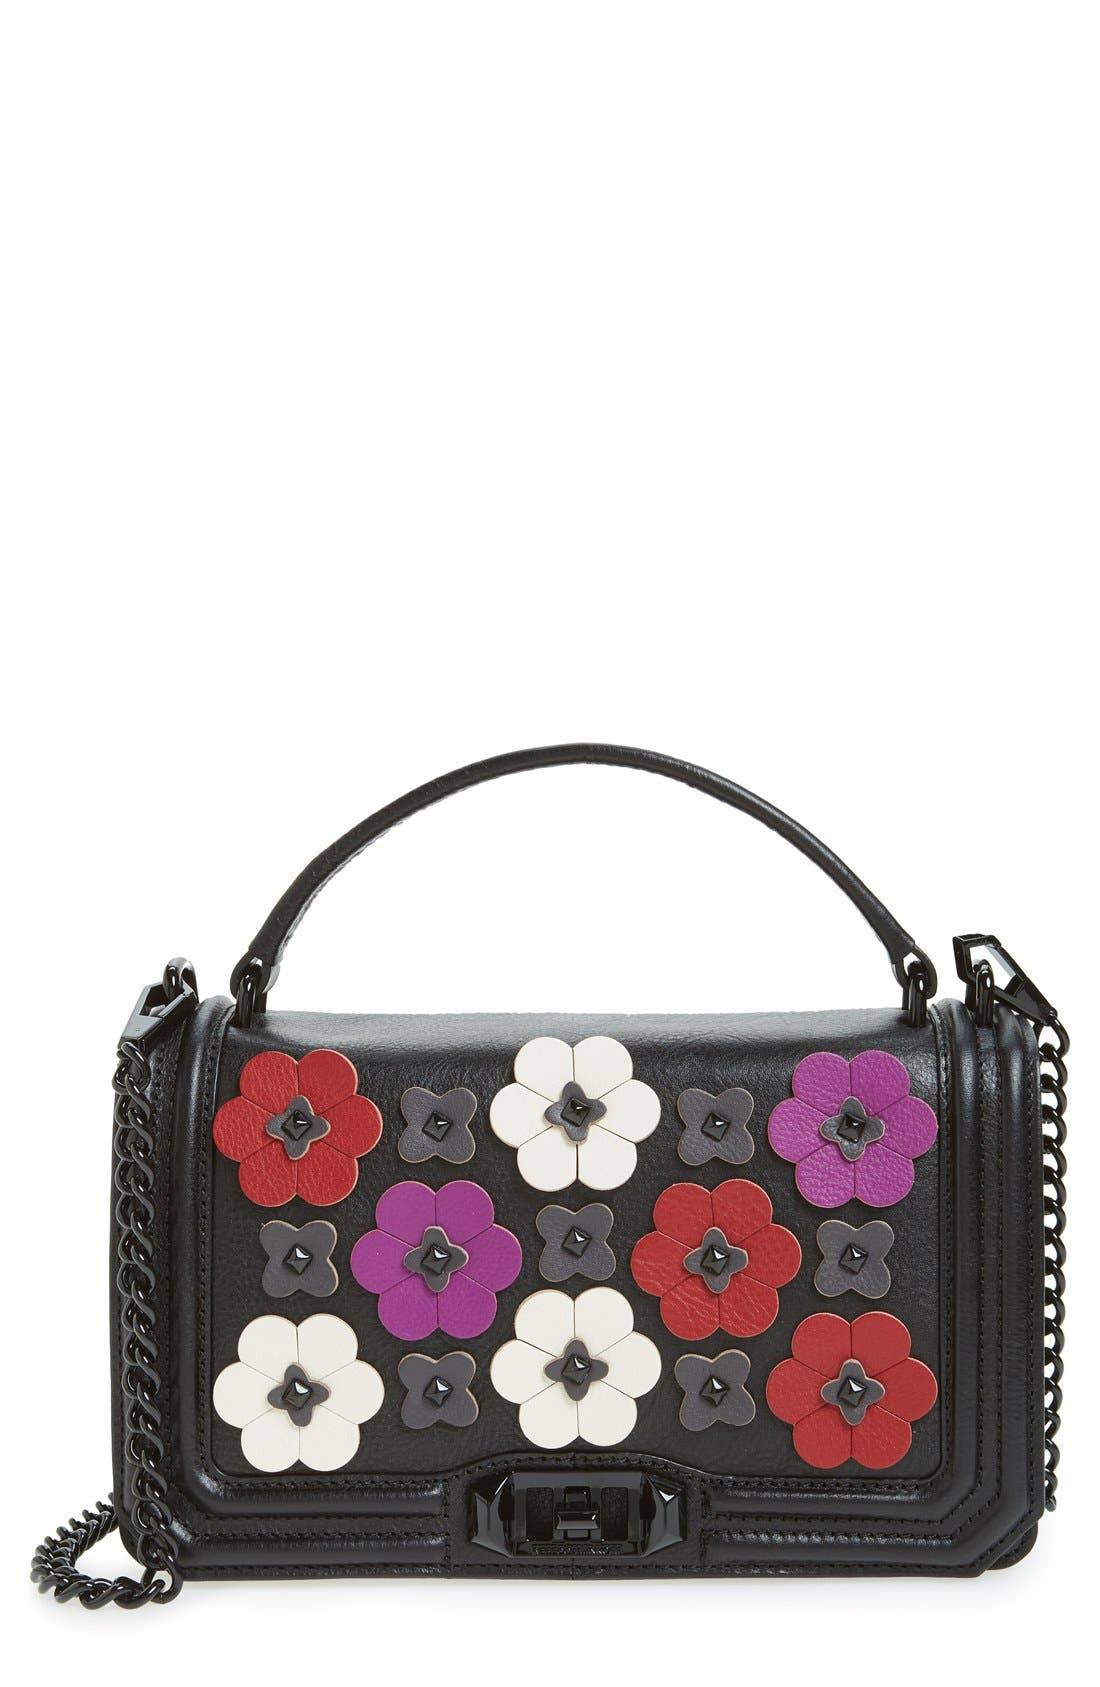 Main Image - Rebecca Minkoff Love Floral Appliqué Crossbody Bag